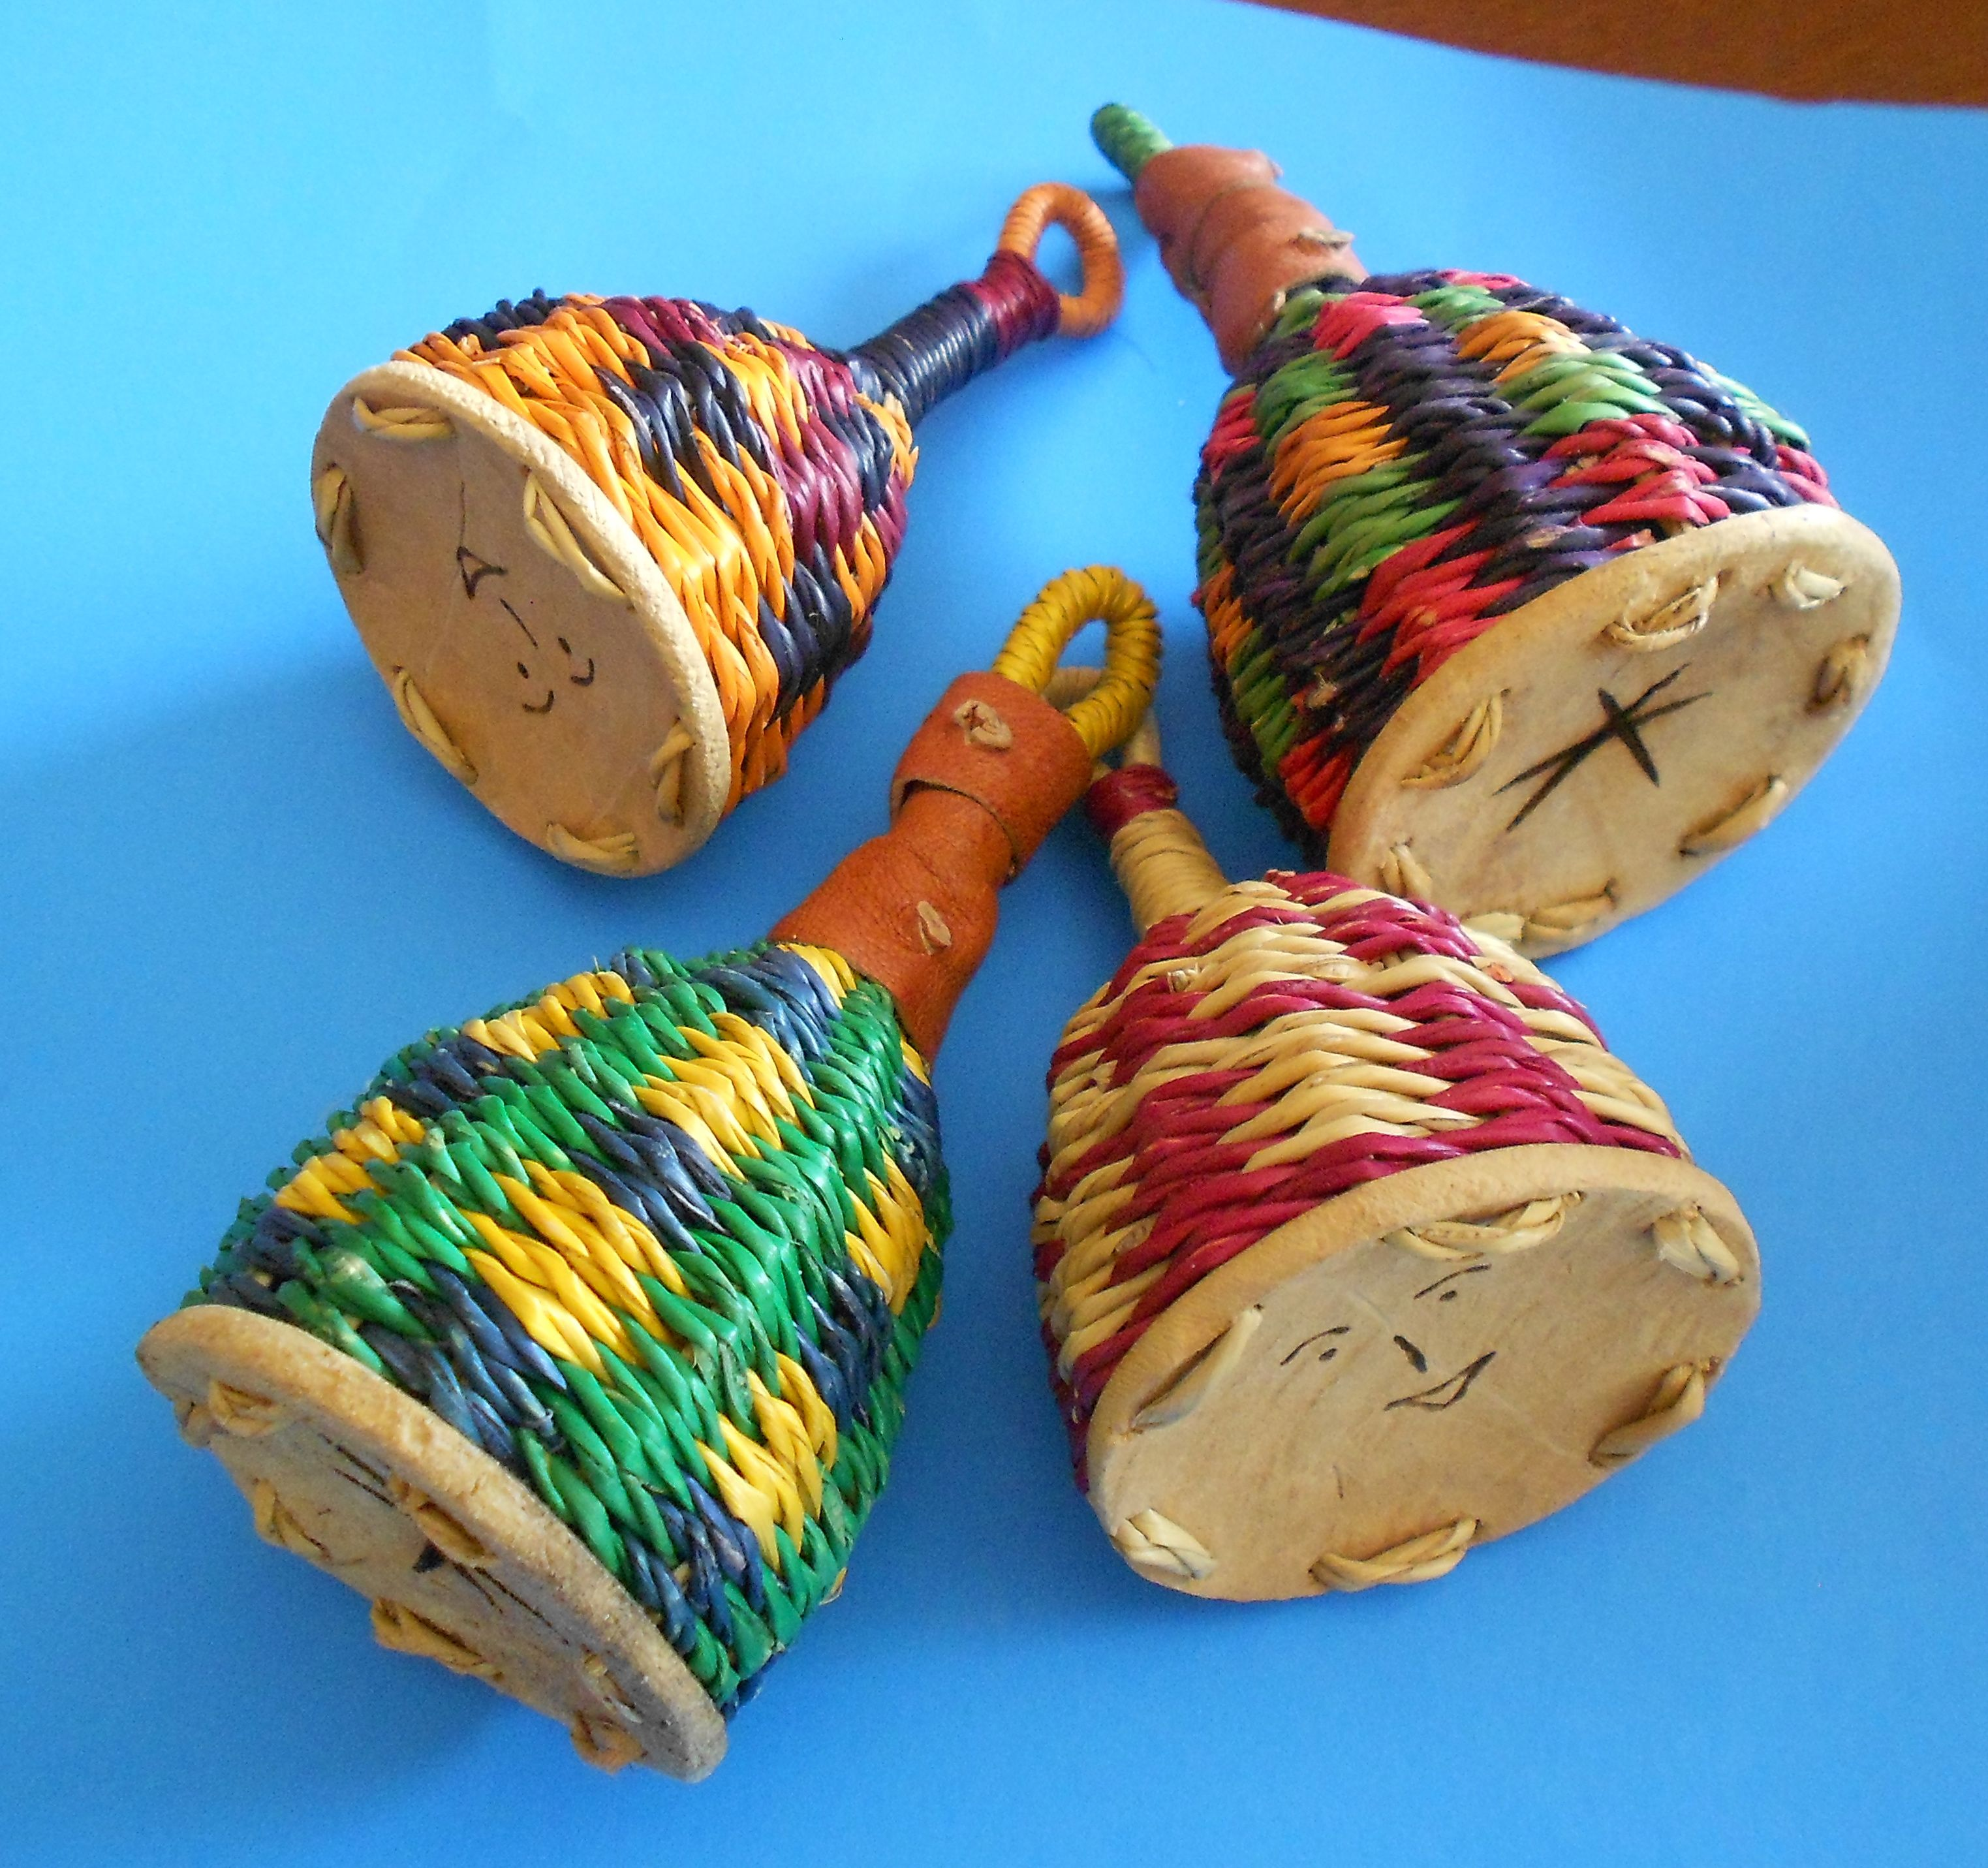 Make Your Own Woven Caxixi Rattle